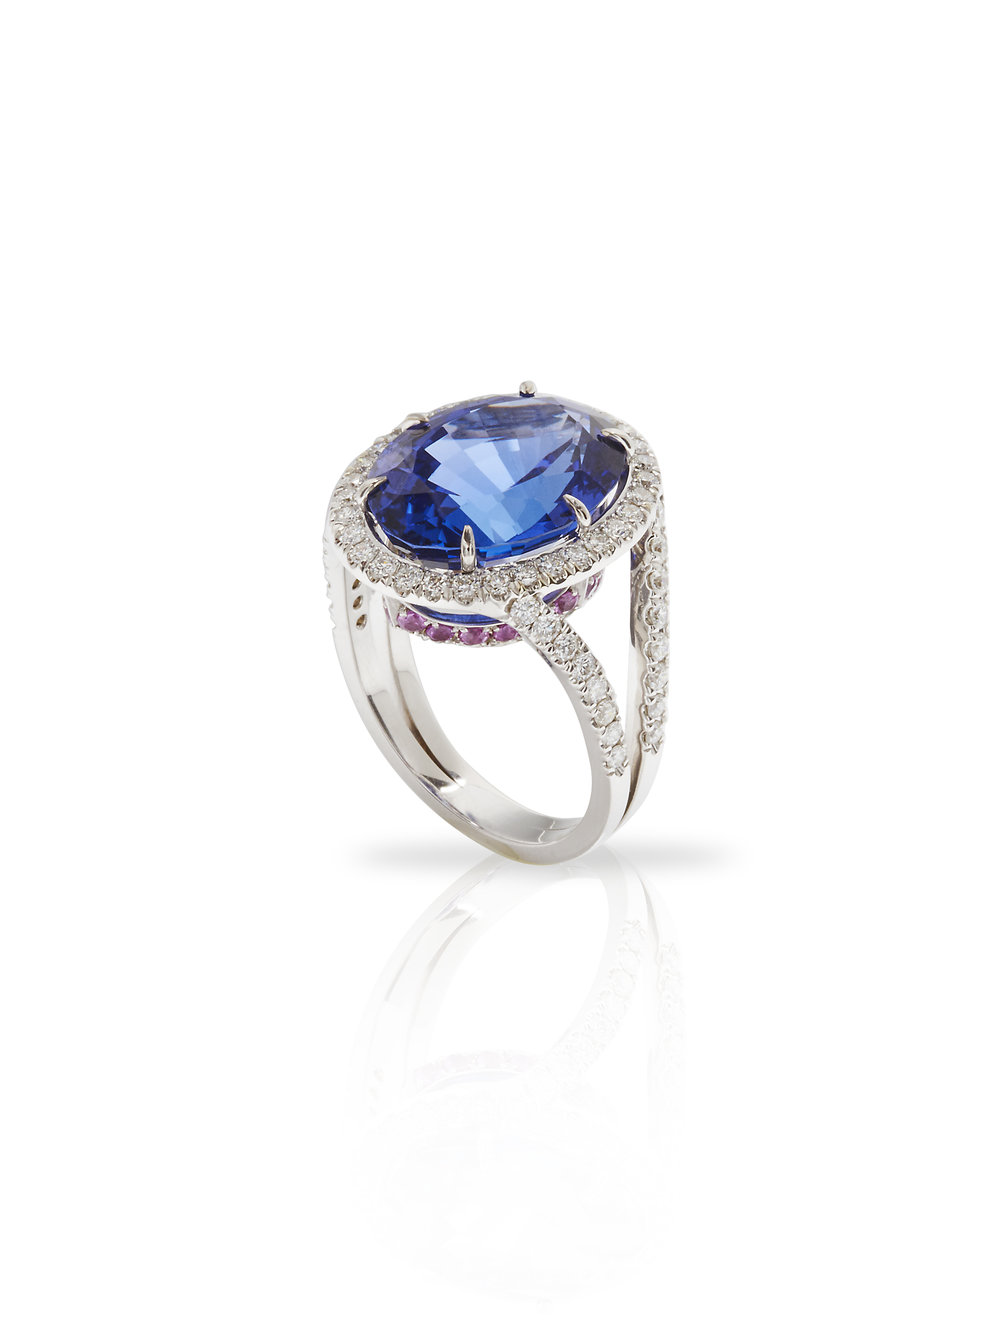 SARA RINGS   1.20 CT OF DIAMONDS  10.57 CT OF TANZANITE      Contact for inquiry